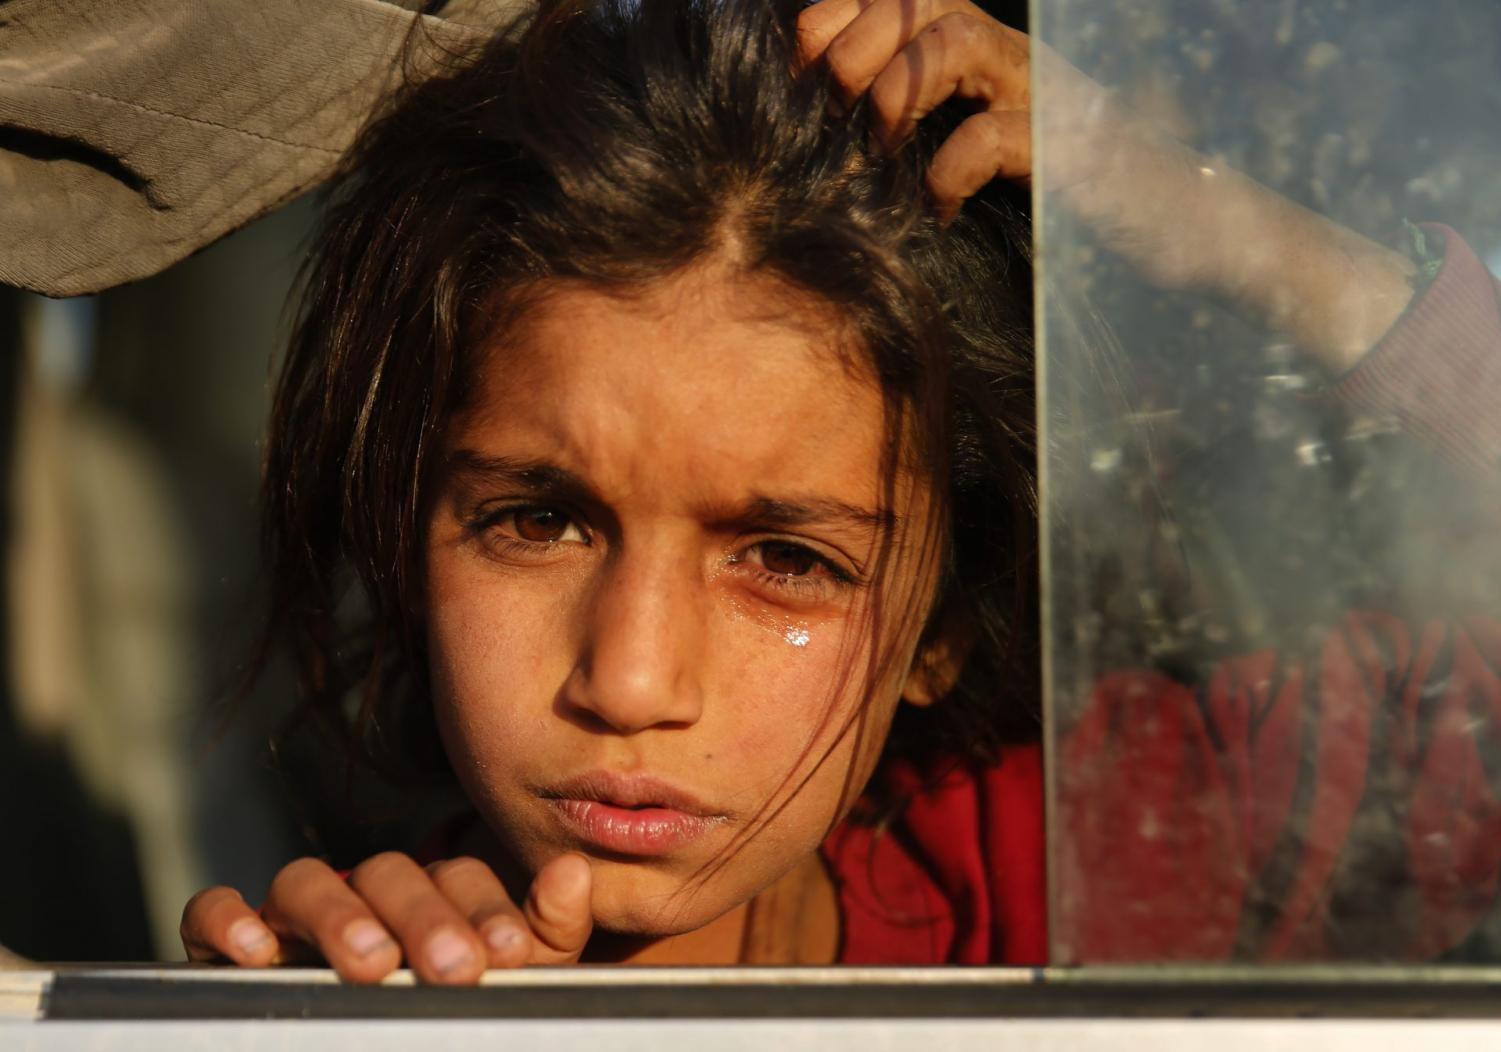 A Syrian girl who is newly displaced by the Turkish military operation in northeastern Syria, weeps as she sits in a bus upon her arrival at a camp in Mosul, Iraq, Wednesday, Oct. 16, 2019.